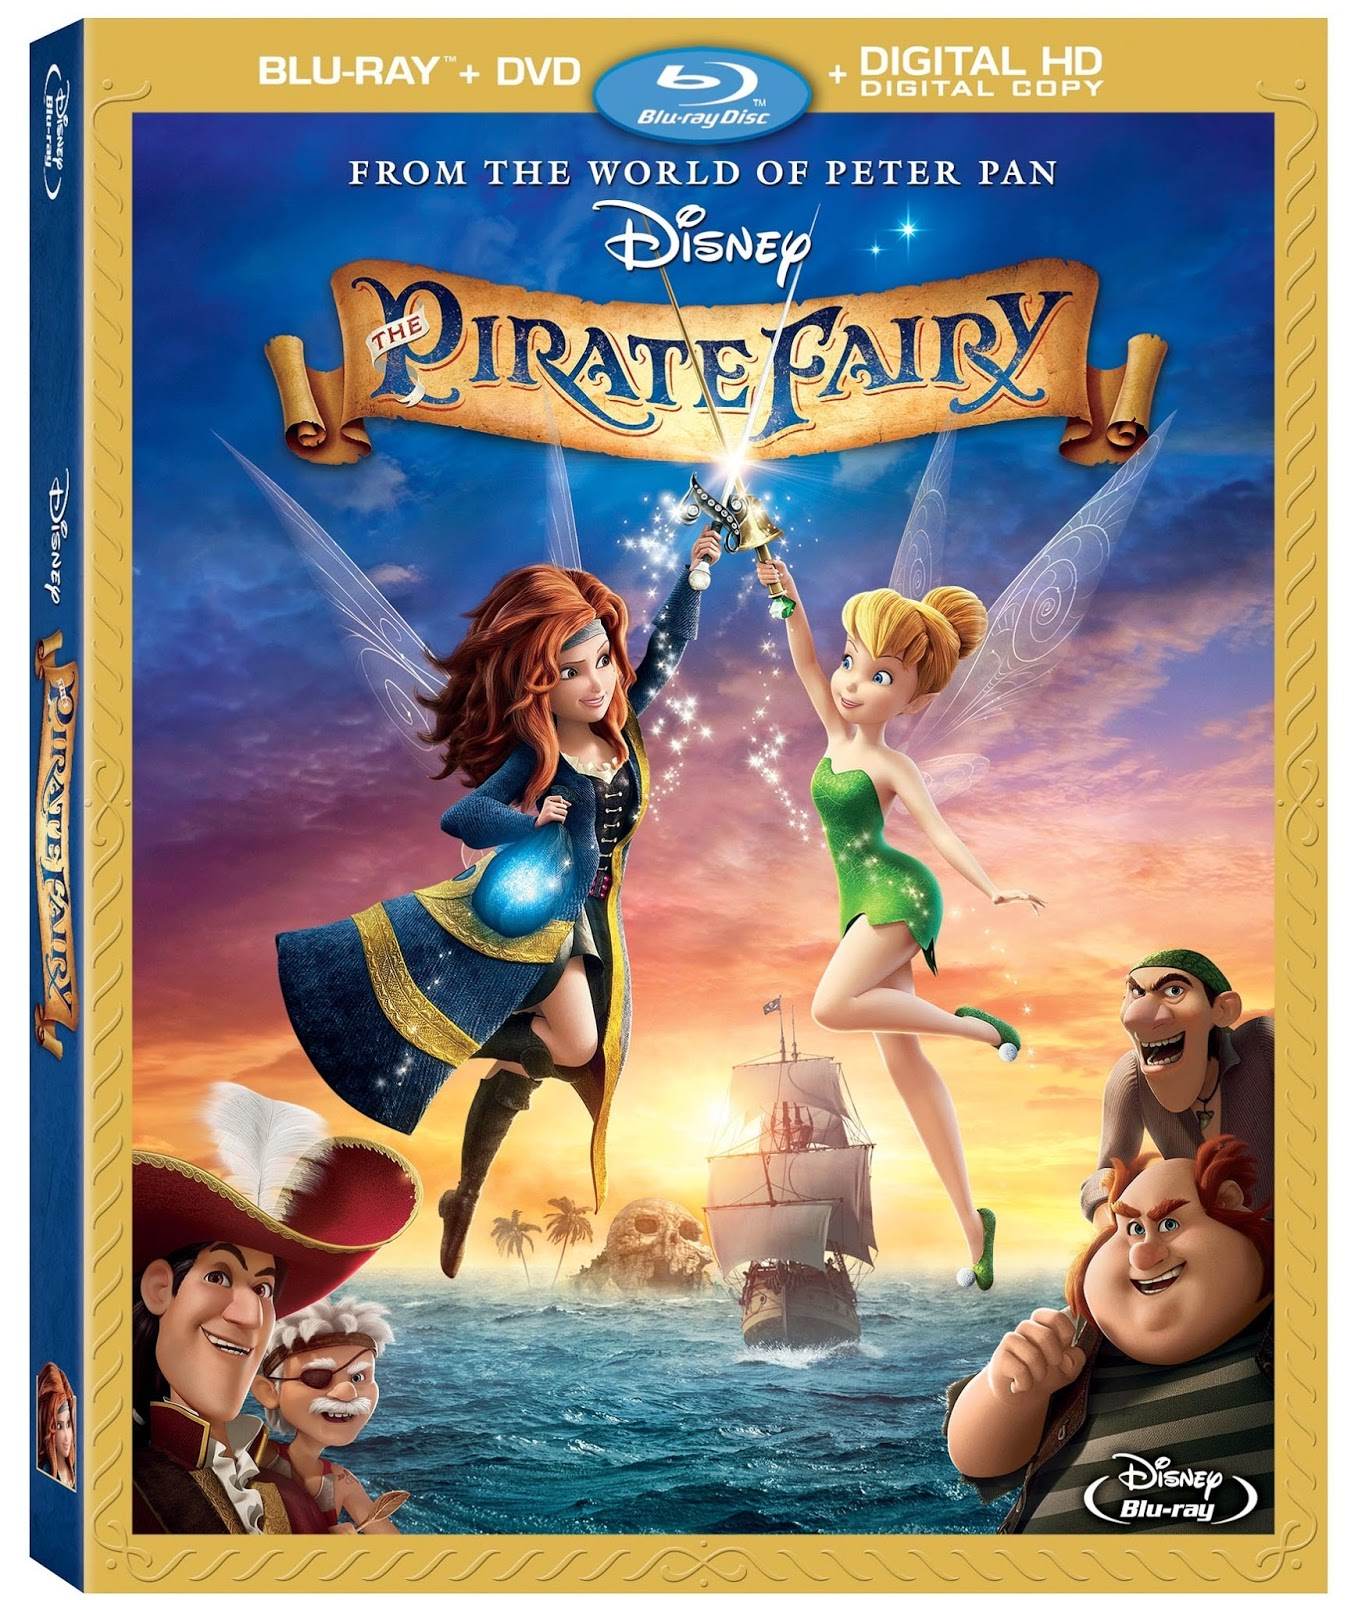 Disney Doppelgangers Pirates Edition: Disney Film Project: The Pirate Fairy Blu-ray & Movie Review